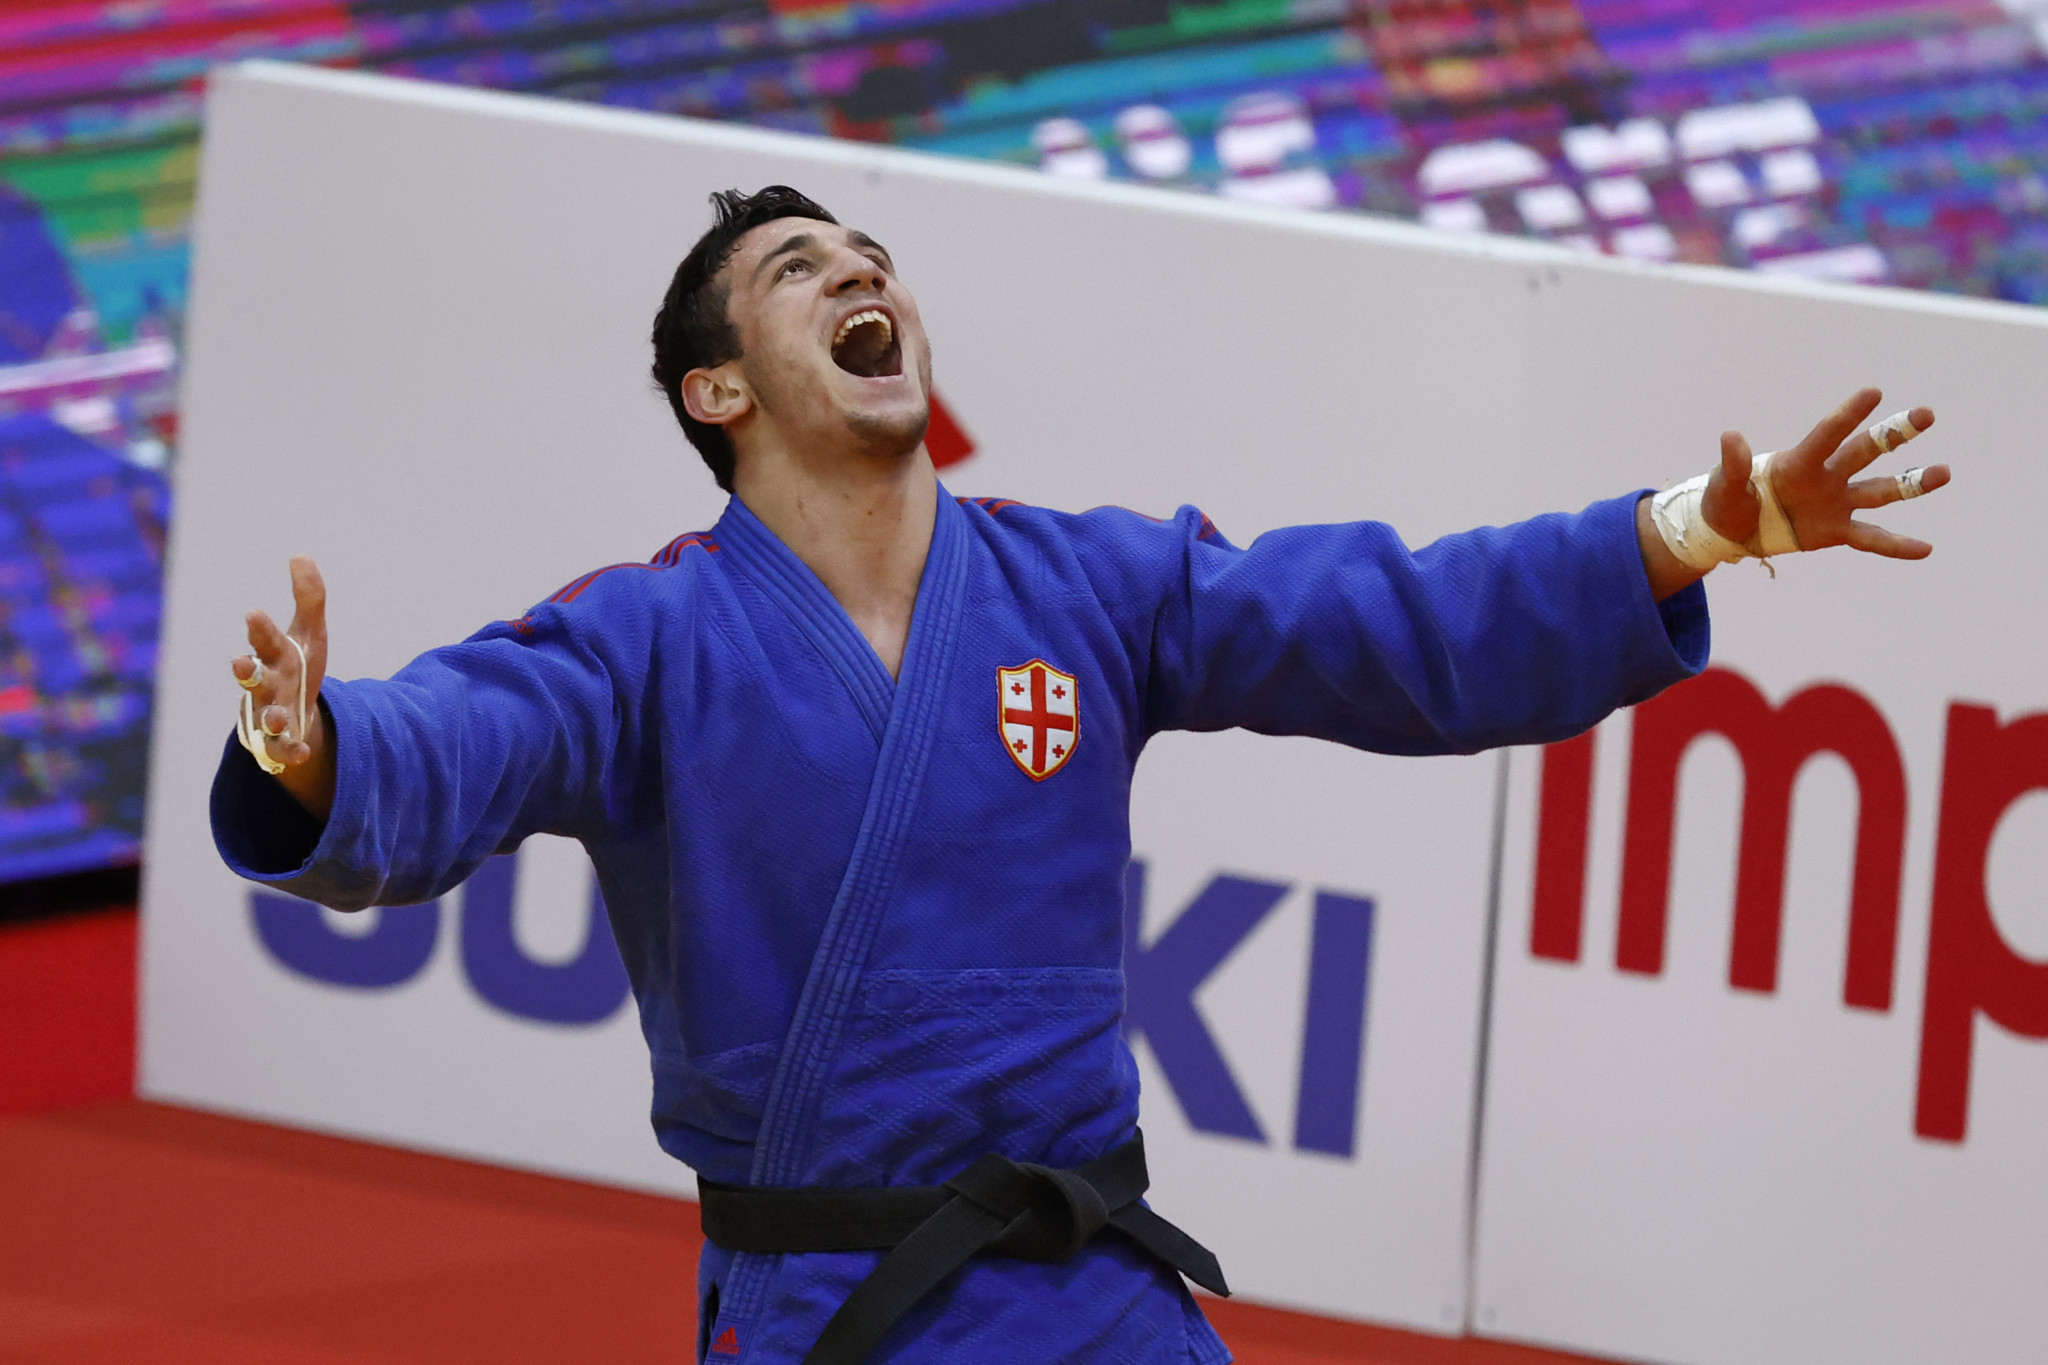 Bekauri beats Georgian rival to win gold on final day of European Judo Championships